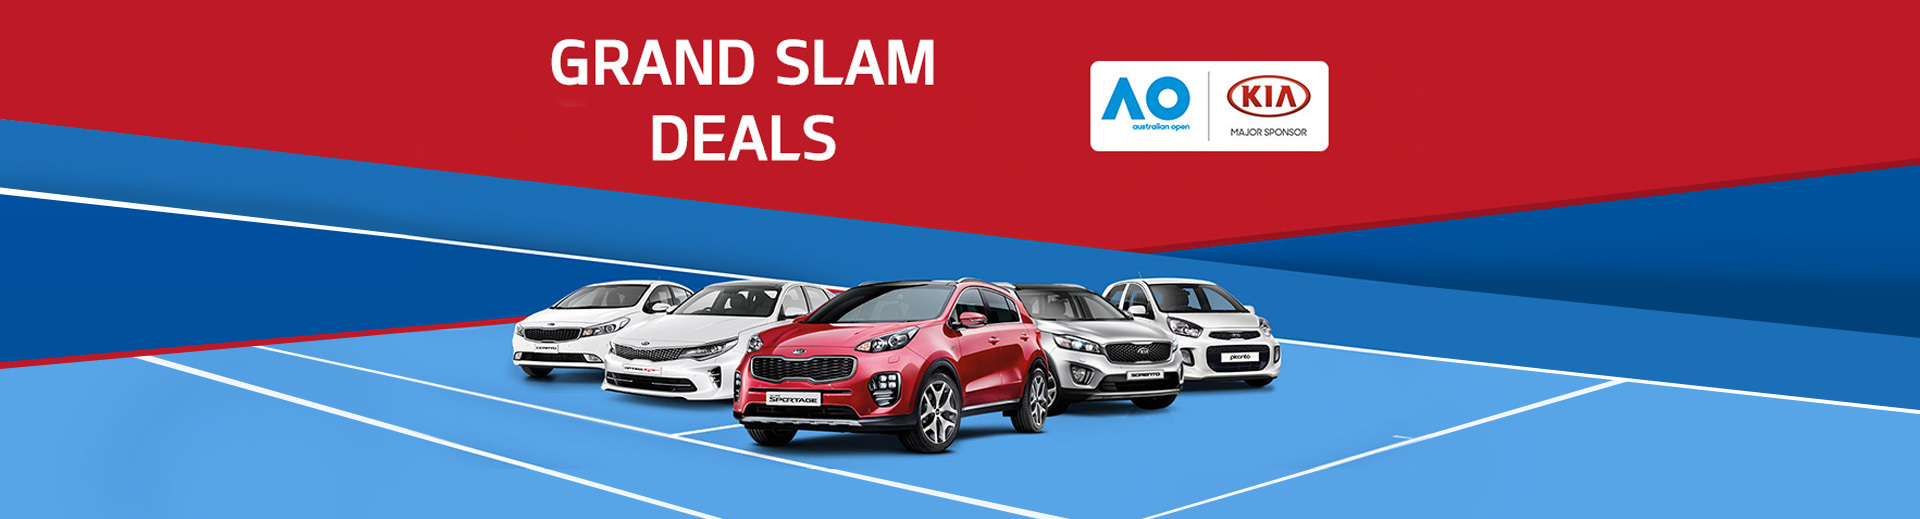 Kia - Grand Slam Deals